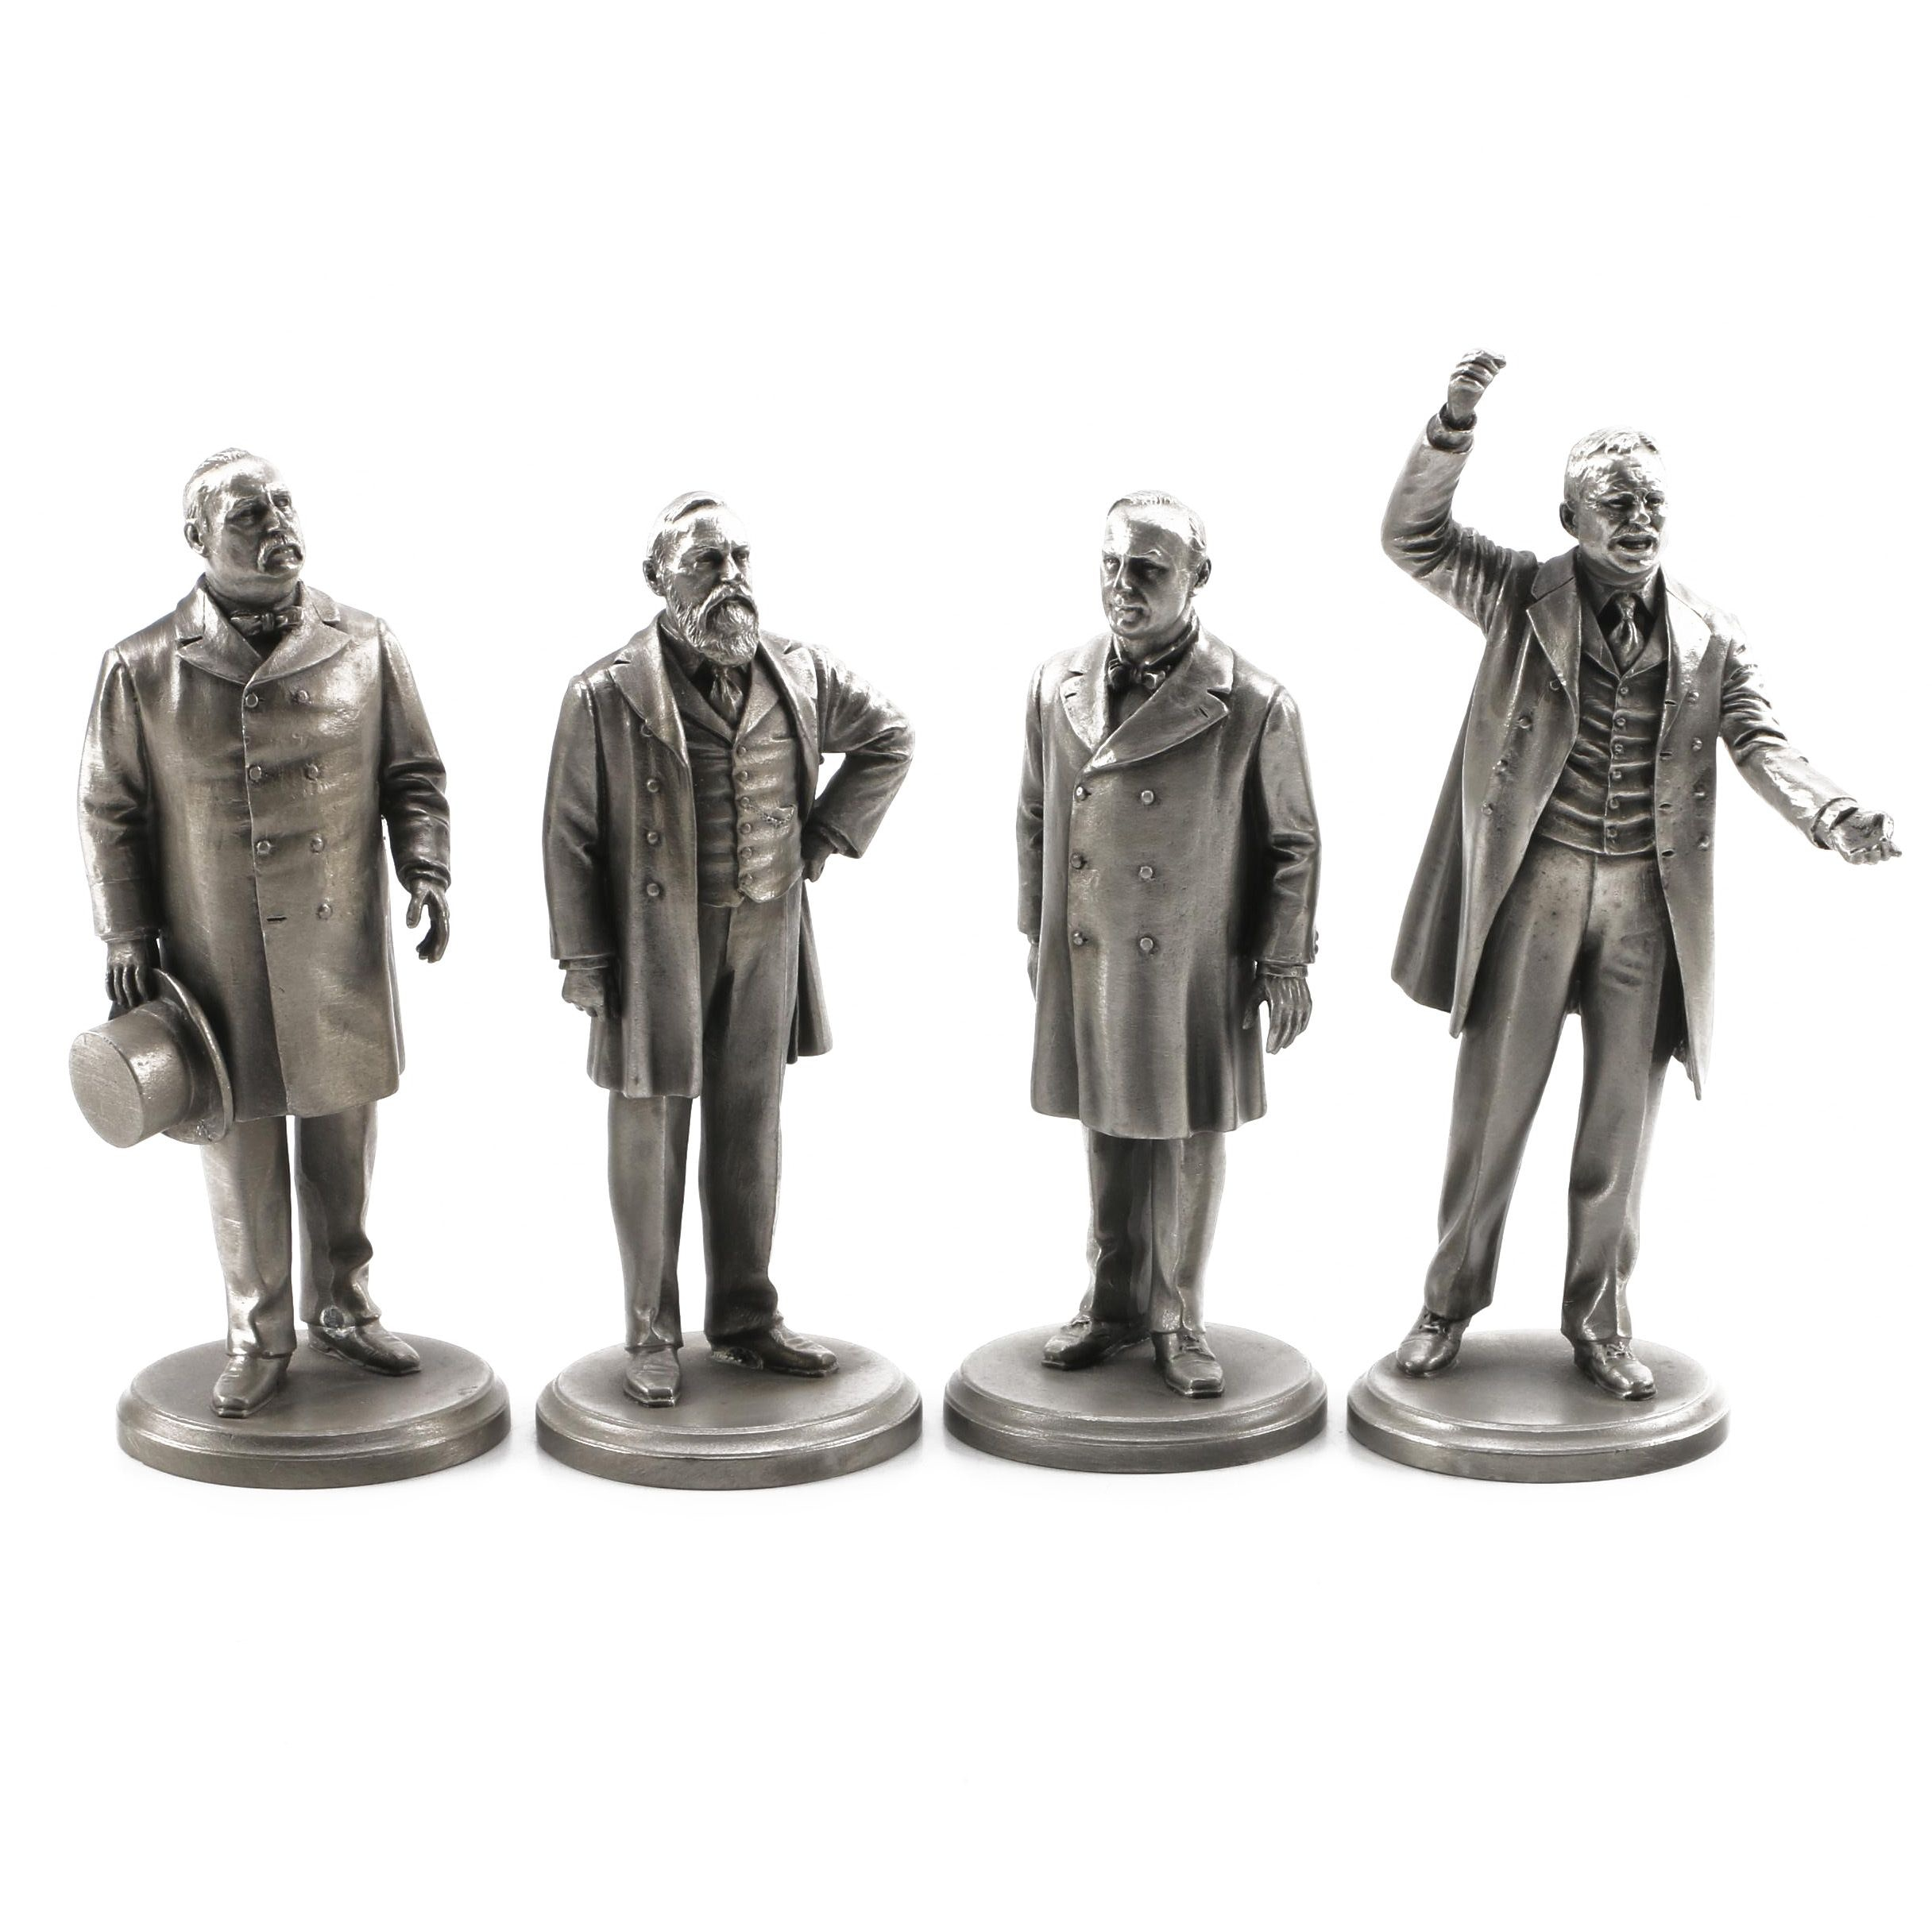 Lance Pewter President Figurines including Cleveland, Harrison, and McKinley